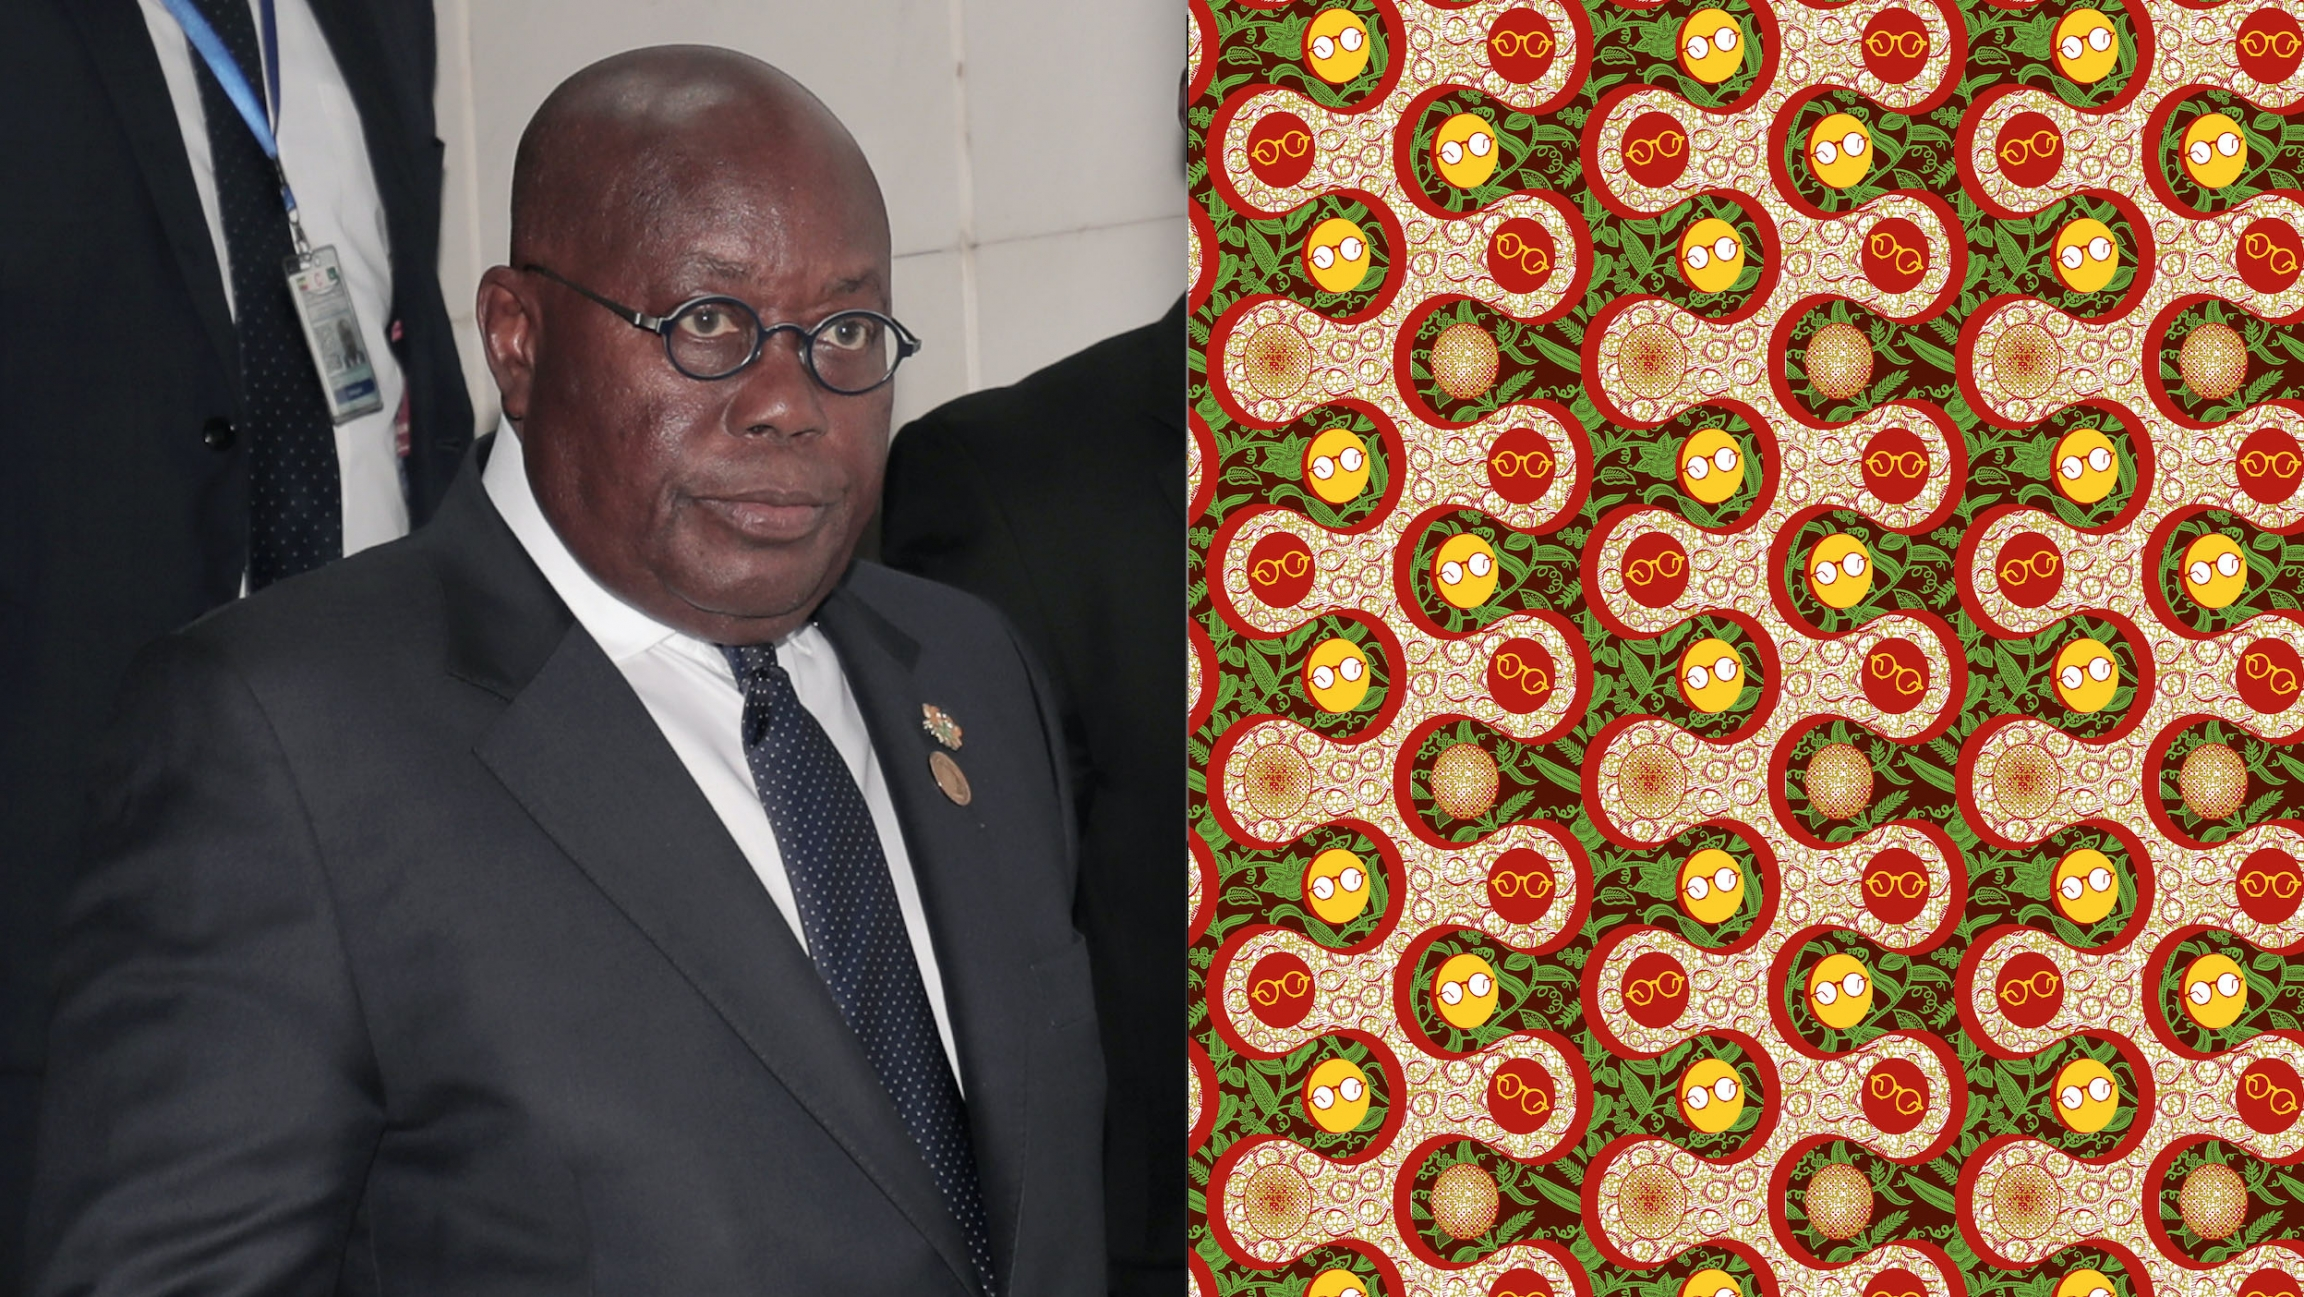 Another motif produced by Ghana Textiles Printing features eyeglasses, a nod to the frequent televised speeches of Ghana's President Nana Akufo-Addo, left, during the pandemic.